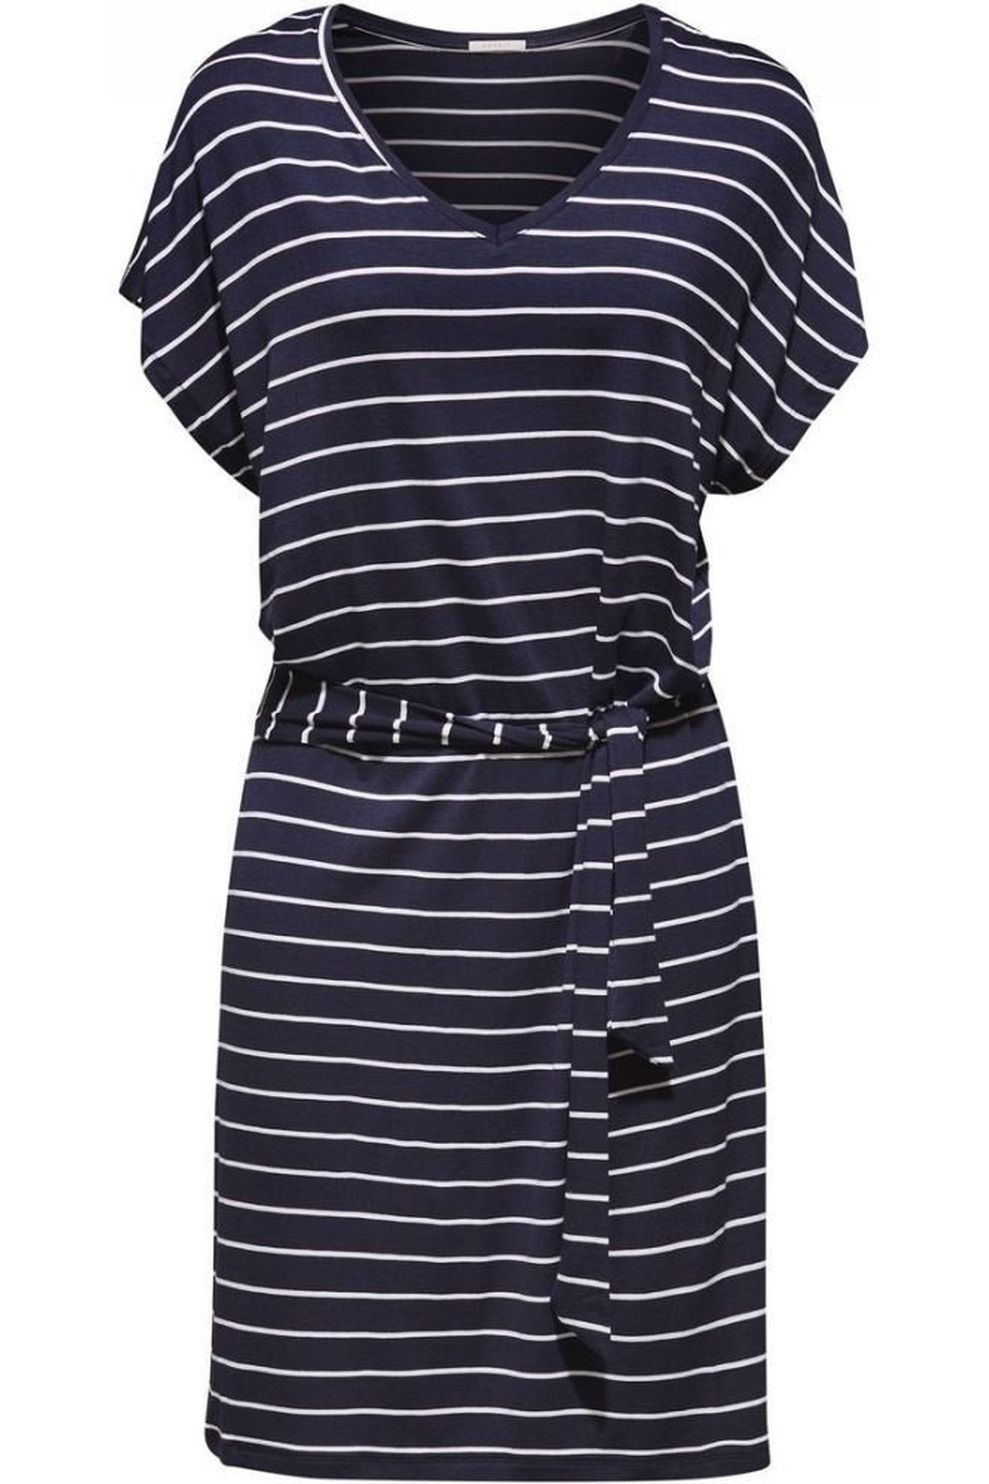 Esprit Jurk Port Beach Dress Cotton Stripe Sl voor dames - Blauw/Wit - Maten: XS, M